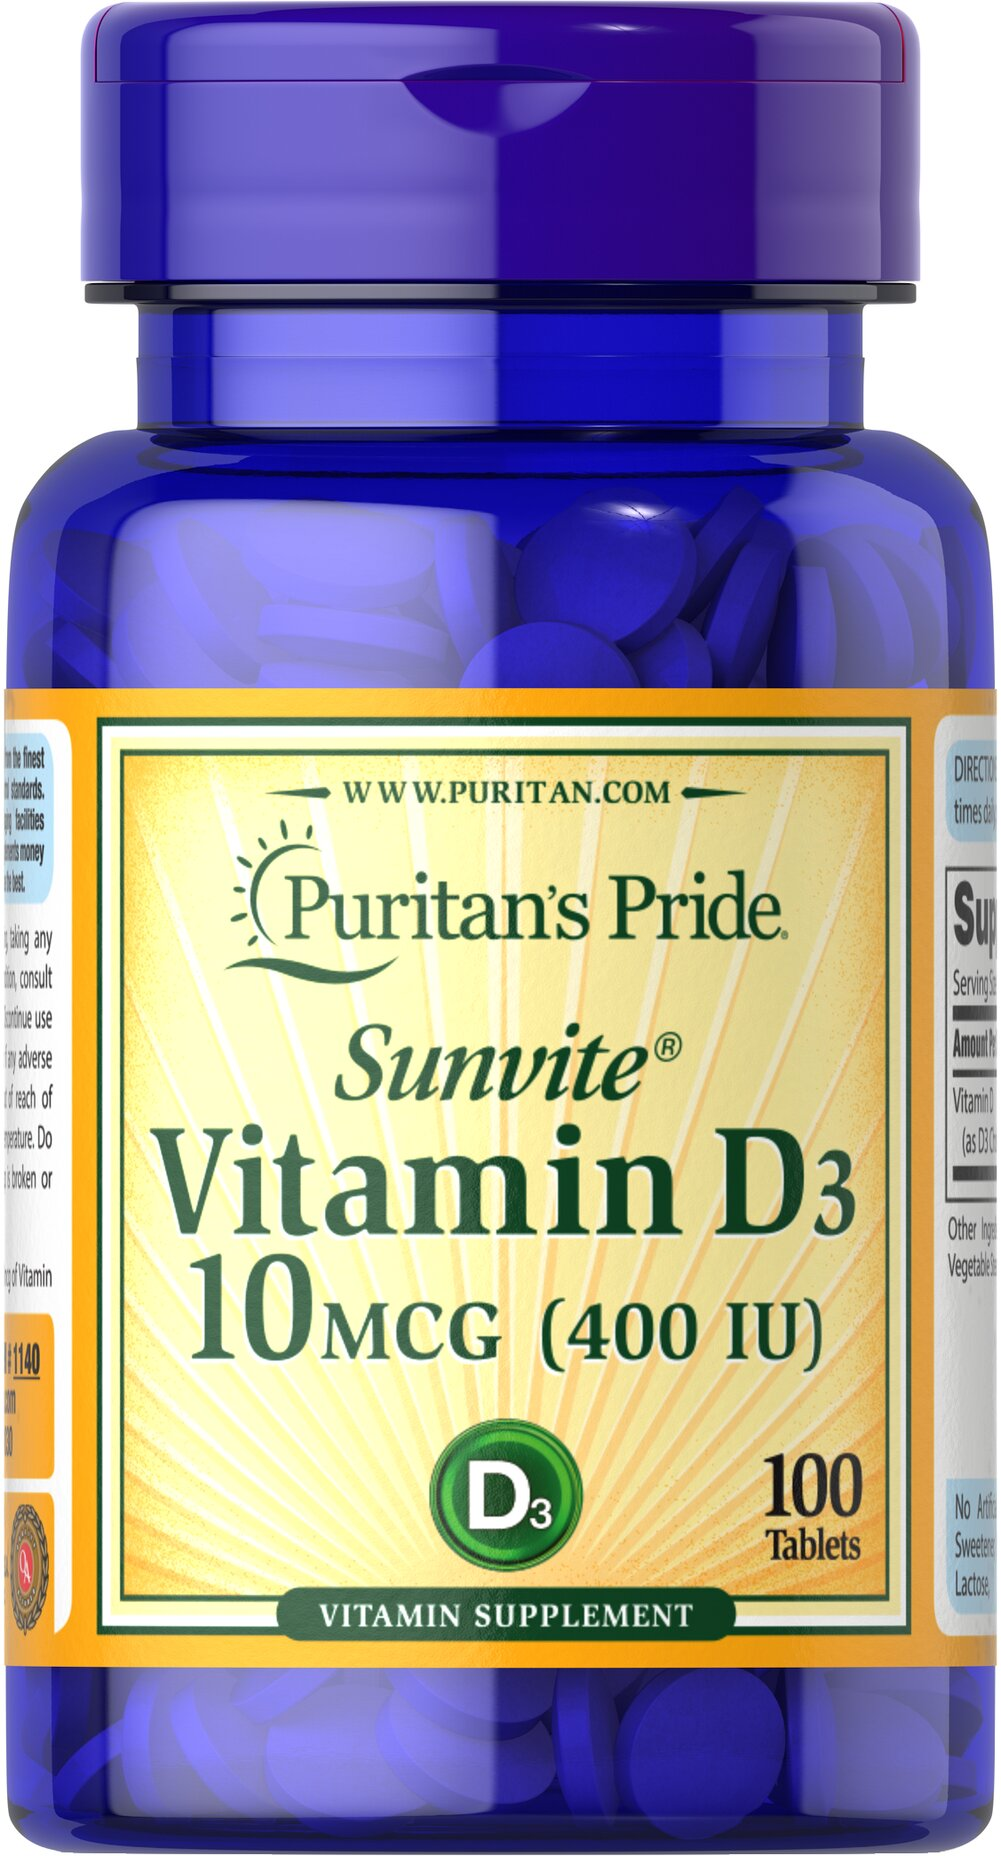 Vitamin D3 400 IU  100 Tablets 400 IU $3.99